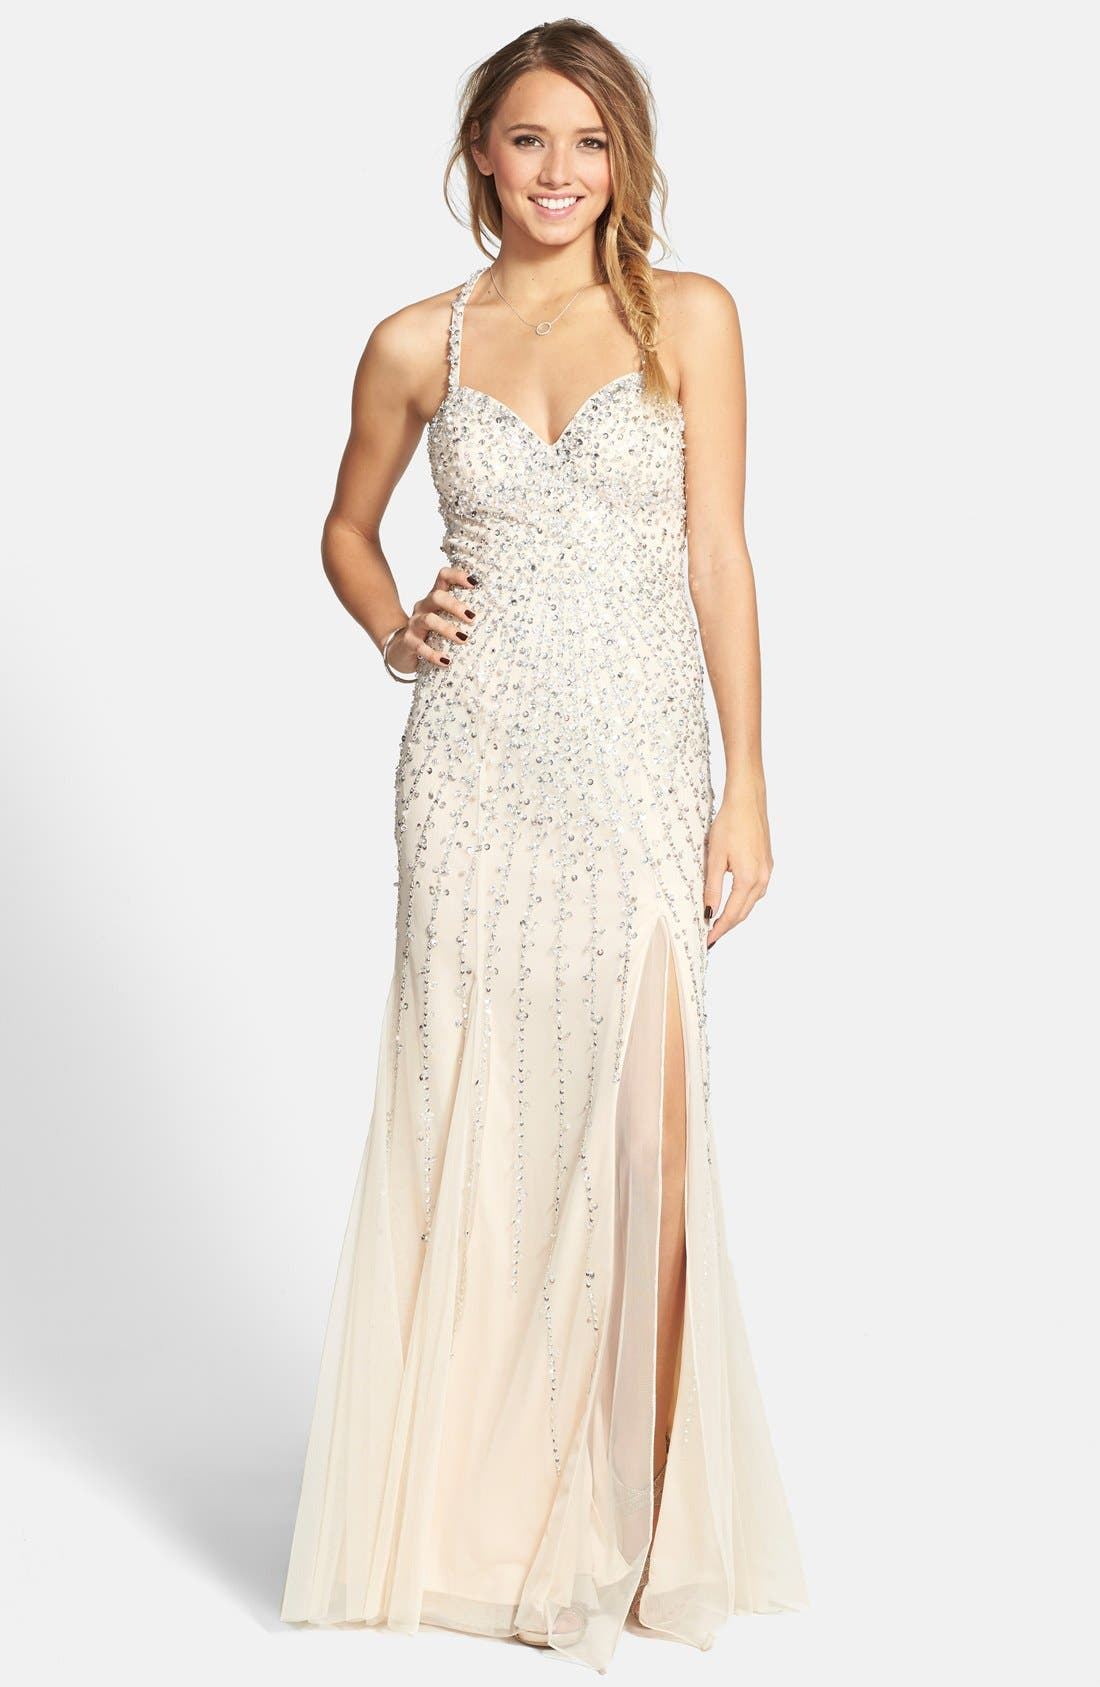 Alternate Image 1 Selected - Sean Collection Sequin Sweetheart Mesh Gown (Online Exclusive)